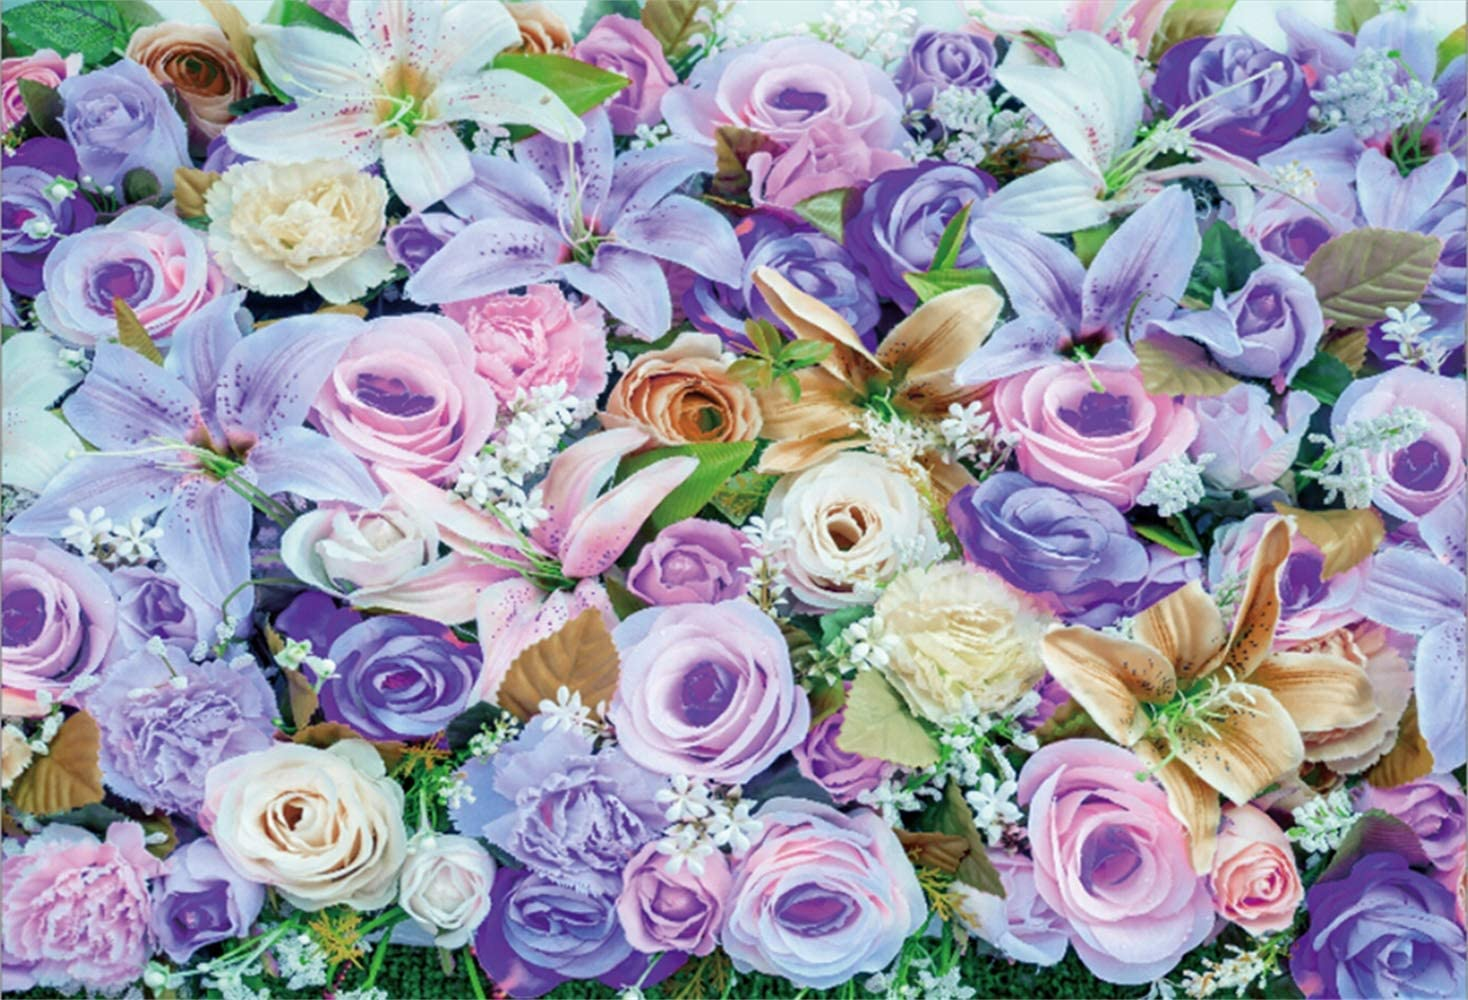 Pink Purple Tone Flower Wall Backdrop 10x6.5ft Polyester Graceful Rose Tulips Flowers Floral Wedding Stage Background Bridal Shower Party Banner Wedding Activities Video Studio Props